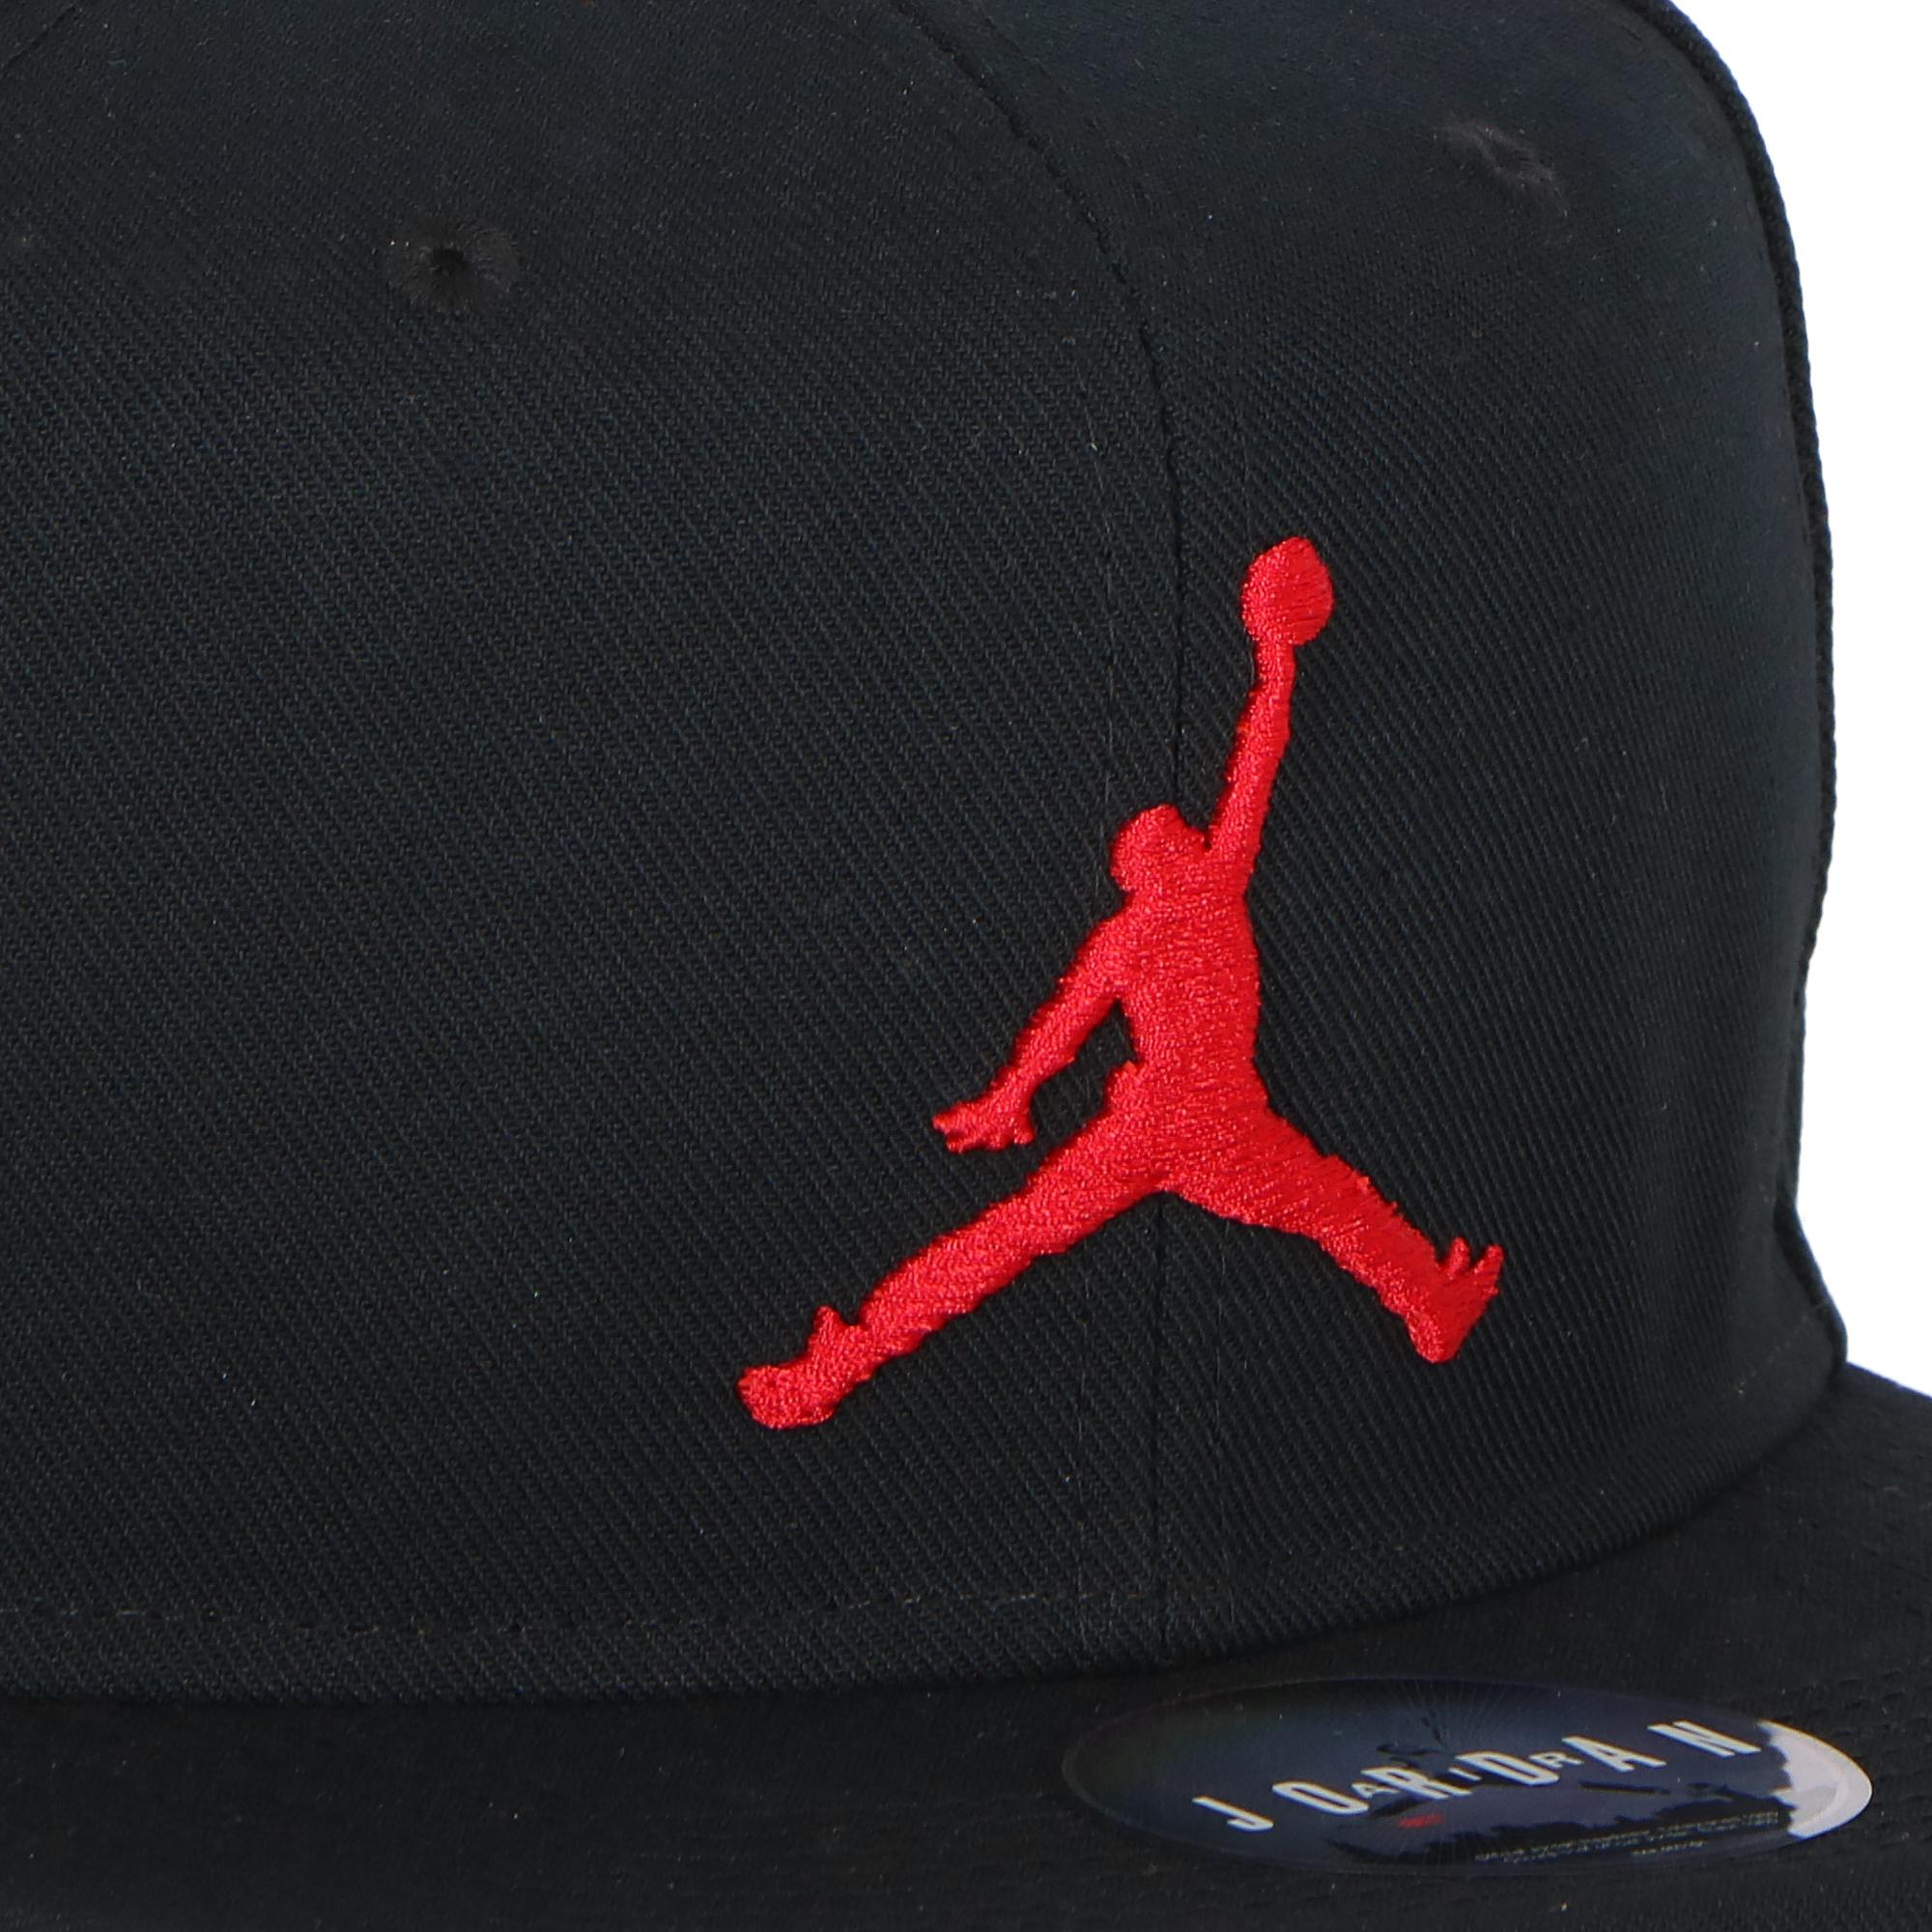 bb4019d9496 Jordan Pro Jumpman Snapback Black Gym Red | Treesse